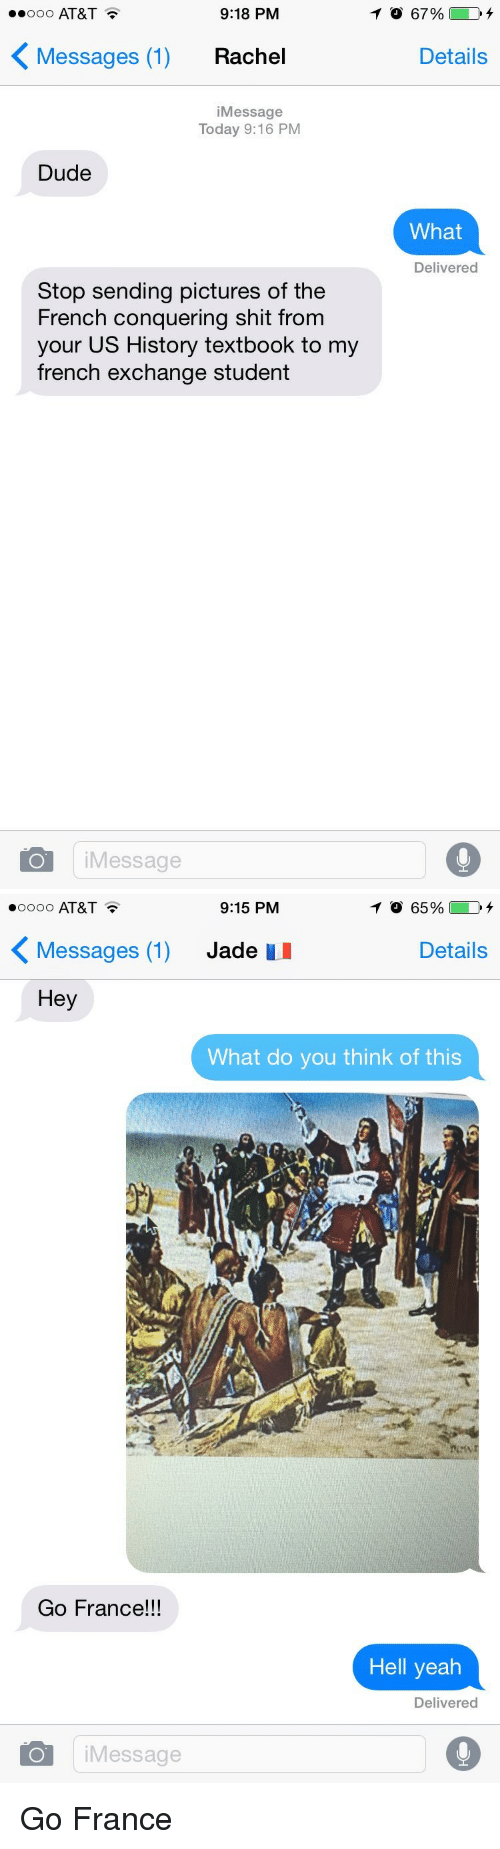 Funny, Jade, and Us History: 9:18 PM  ooo AT&T  K Messages (1)  Rachel  i Message  Today 9:16 PM  Dude  Stop sending pictures of the  French conquering shit from  your US History textbook to my  french exchange student  i Message  Details  What  Delivered   9:15 PM  TO 65%  oooo AT&T  K Messages (1) Jade  uu  Details  Hey  What do you think of this  Go France  Hell yeah  Delivered  i Message  O Go France